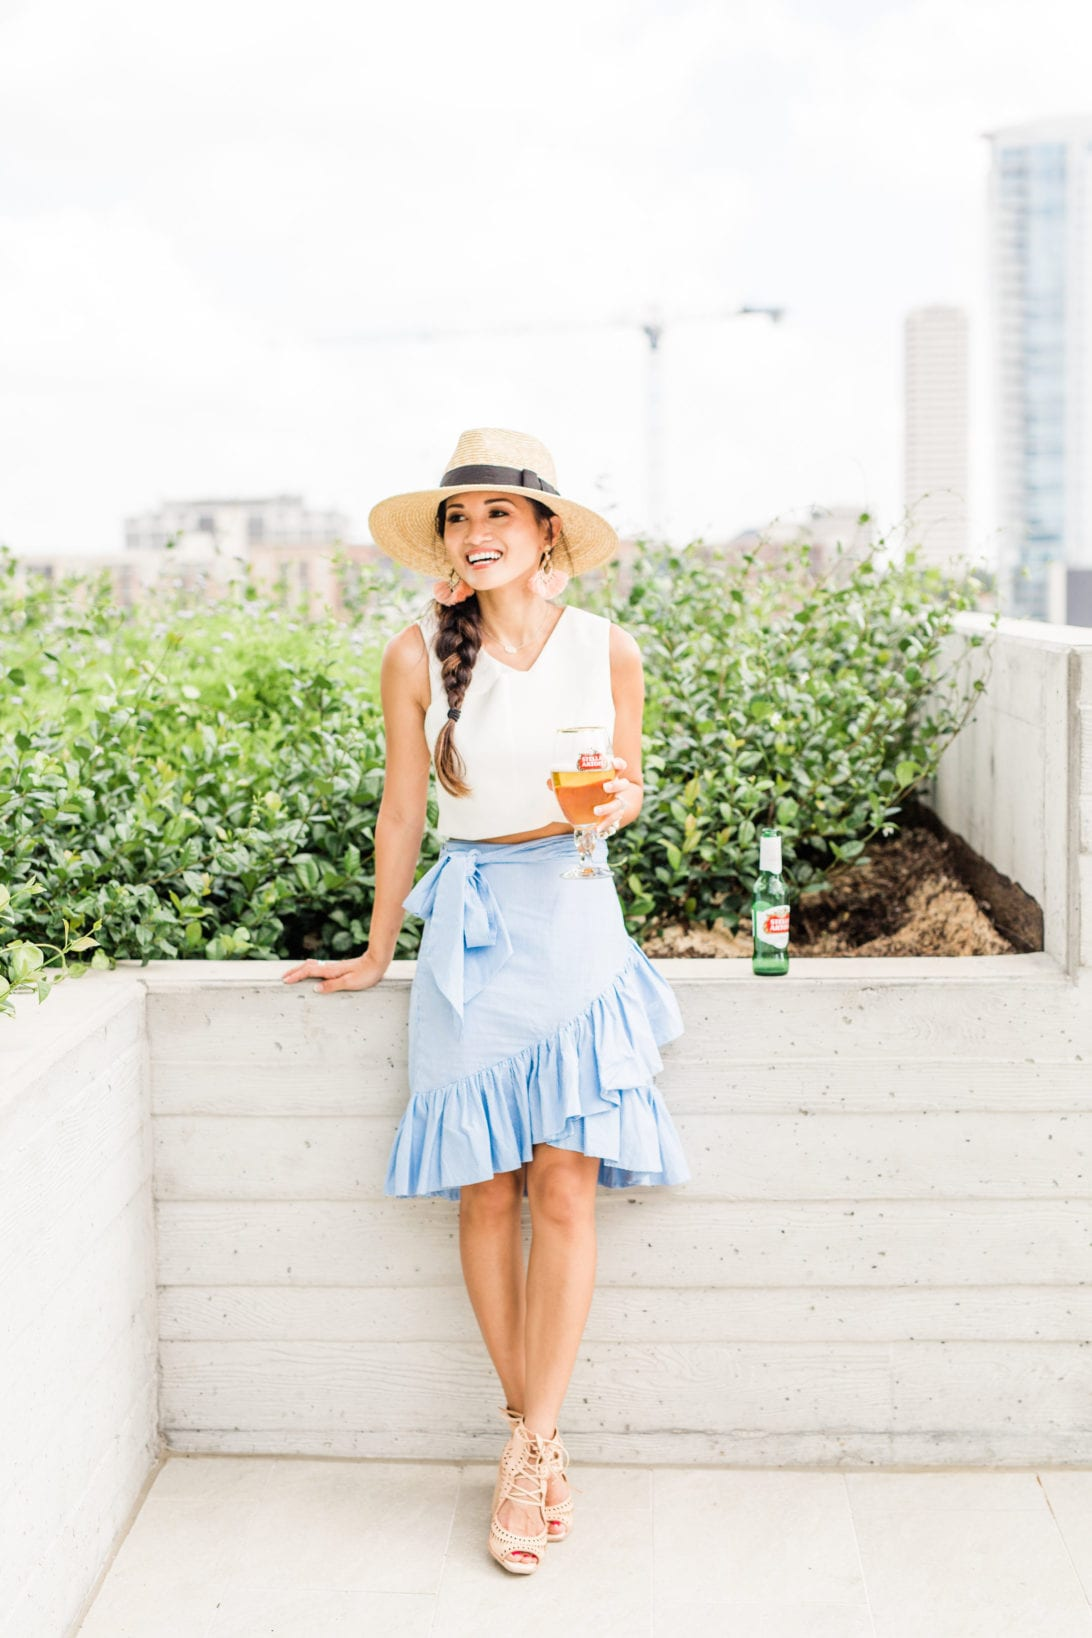 blue ruffle skirt, chic wish, straw hat, Jeffrey Campbell wedges, #dawnpdarnell, #summerstyle #houstonblogger, summer entertaining, summer party, soiree, how to throw a summer soiree, tips to throwing a summer soiree, outdoor entertaining,